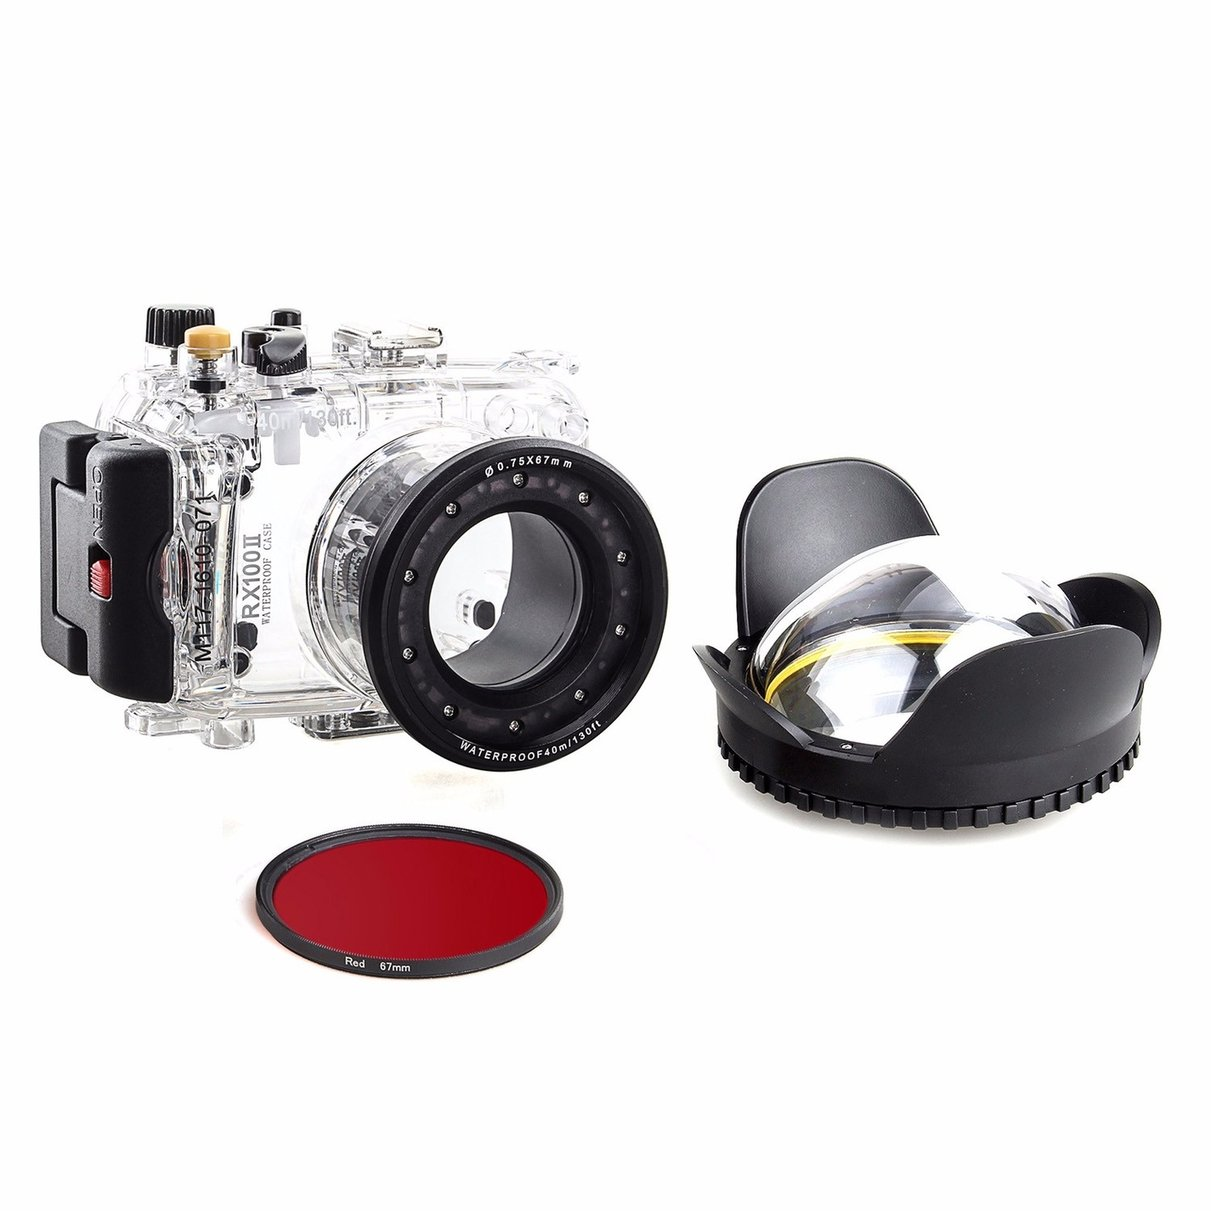 40m/130f Waterproof Underwater Camera Housing Diving Case for SONY DSC RX100 ii + Red Filter 67mm + 67mm Fisheye Lens 1400mah camera battery for sony np bg1 np fg1 dsc h3 dsc w70 bc csge bc csgd w30